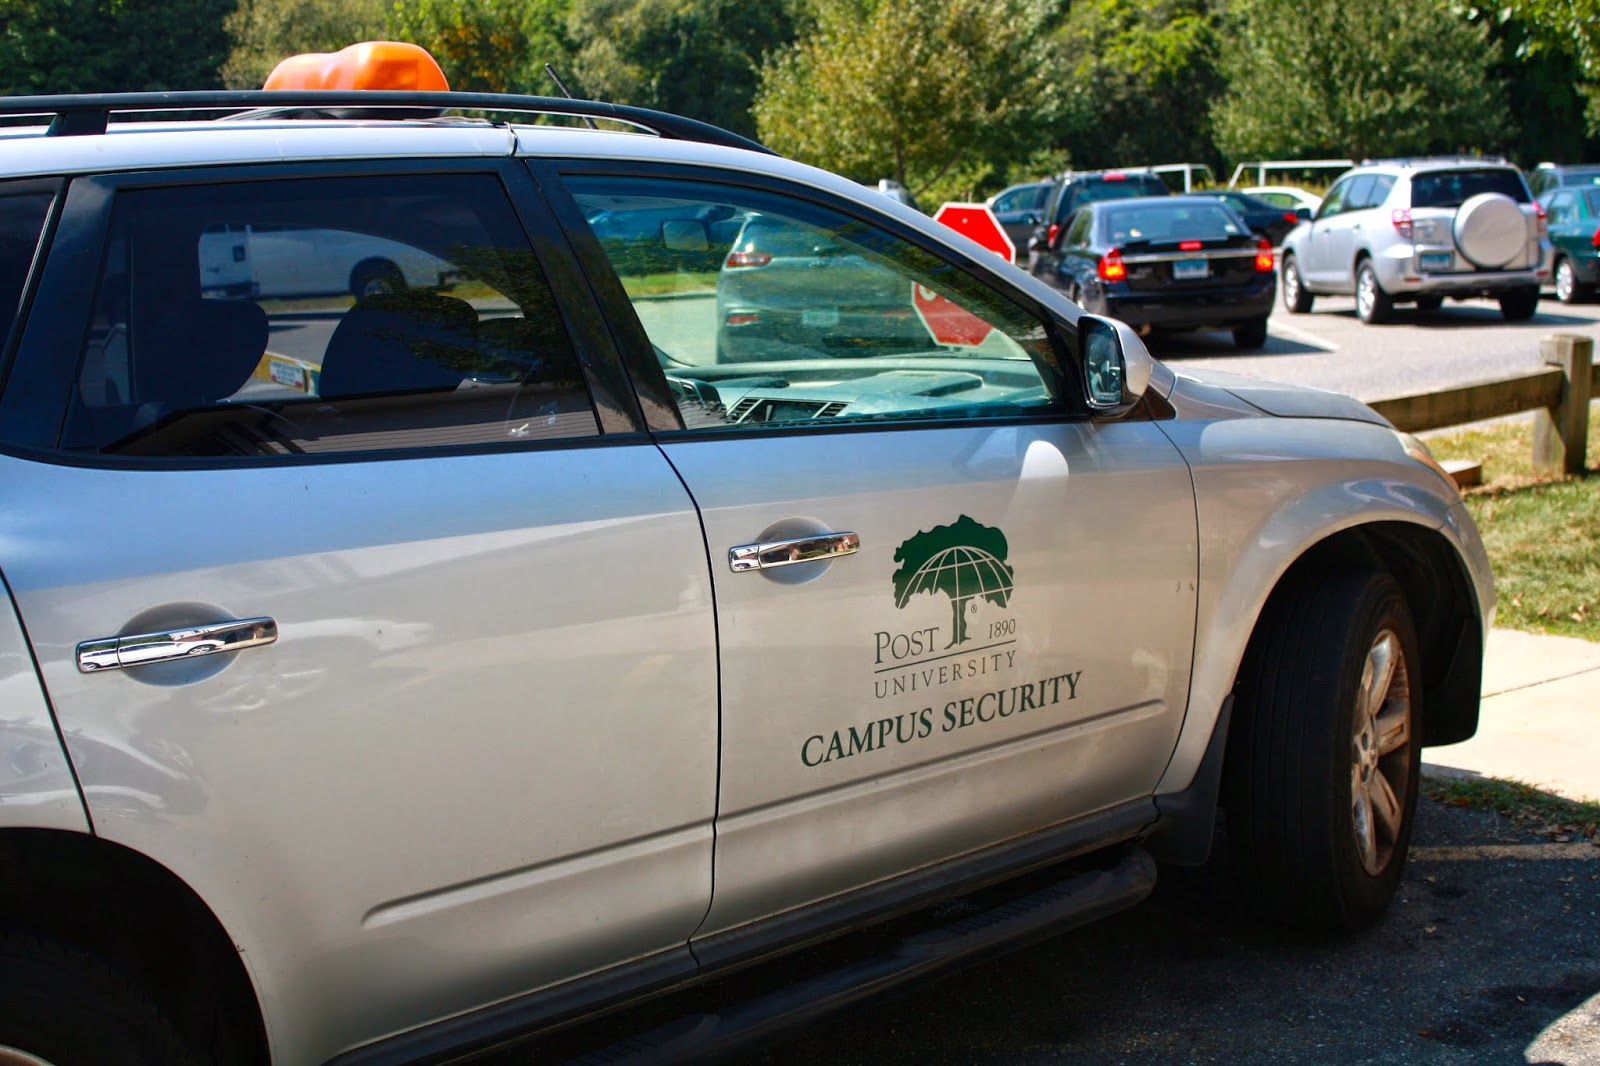 Photo of parked Post University campus security car.